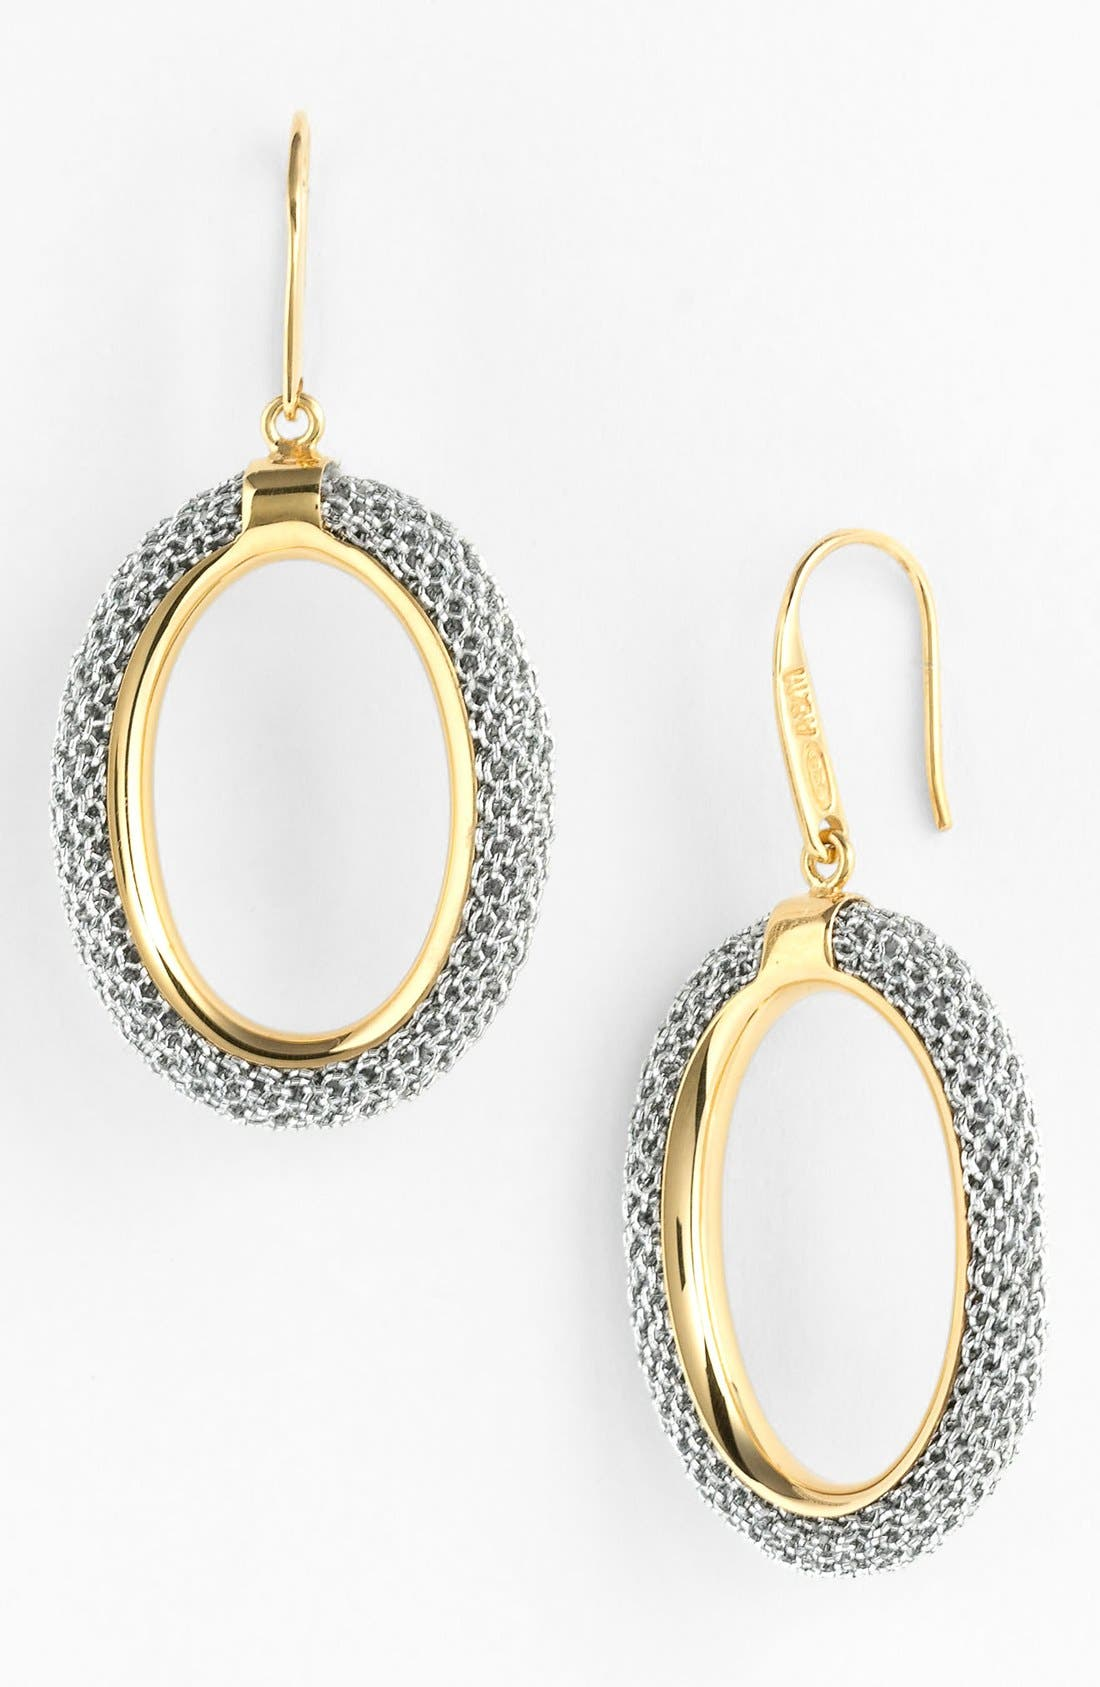 Main Image - Adami & Martucci 'Mesh' Oval Drop Earrings (Nordstrom Exclusive)